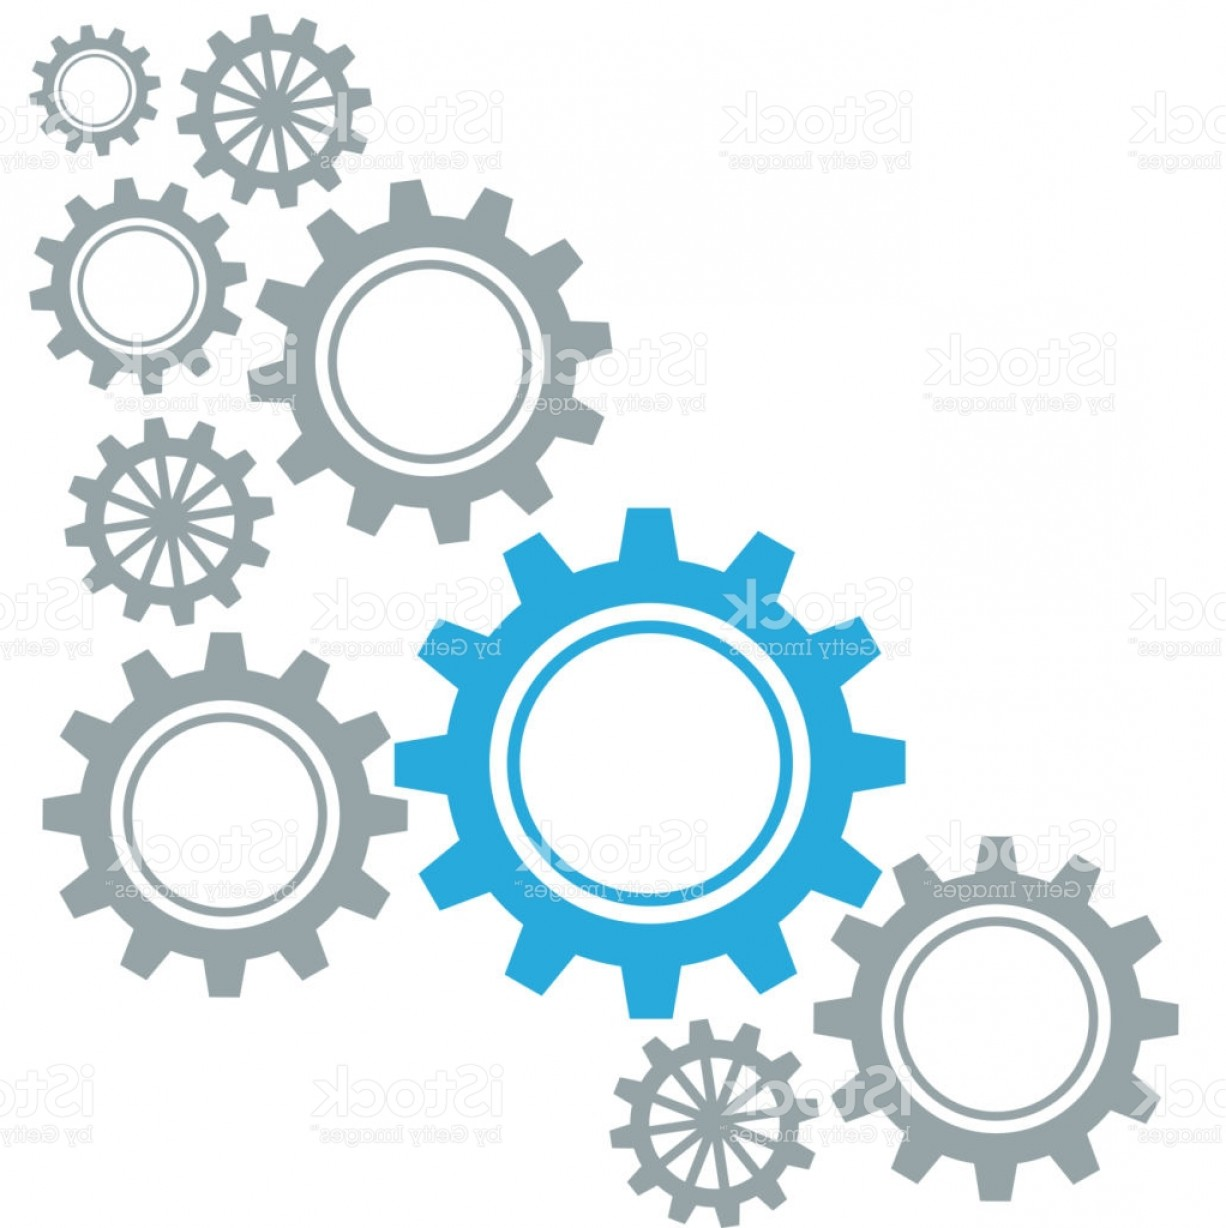 Vector Gear Graphics: Gears Border Graphics Grey And Blue On White Background Gm